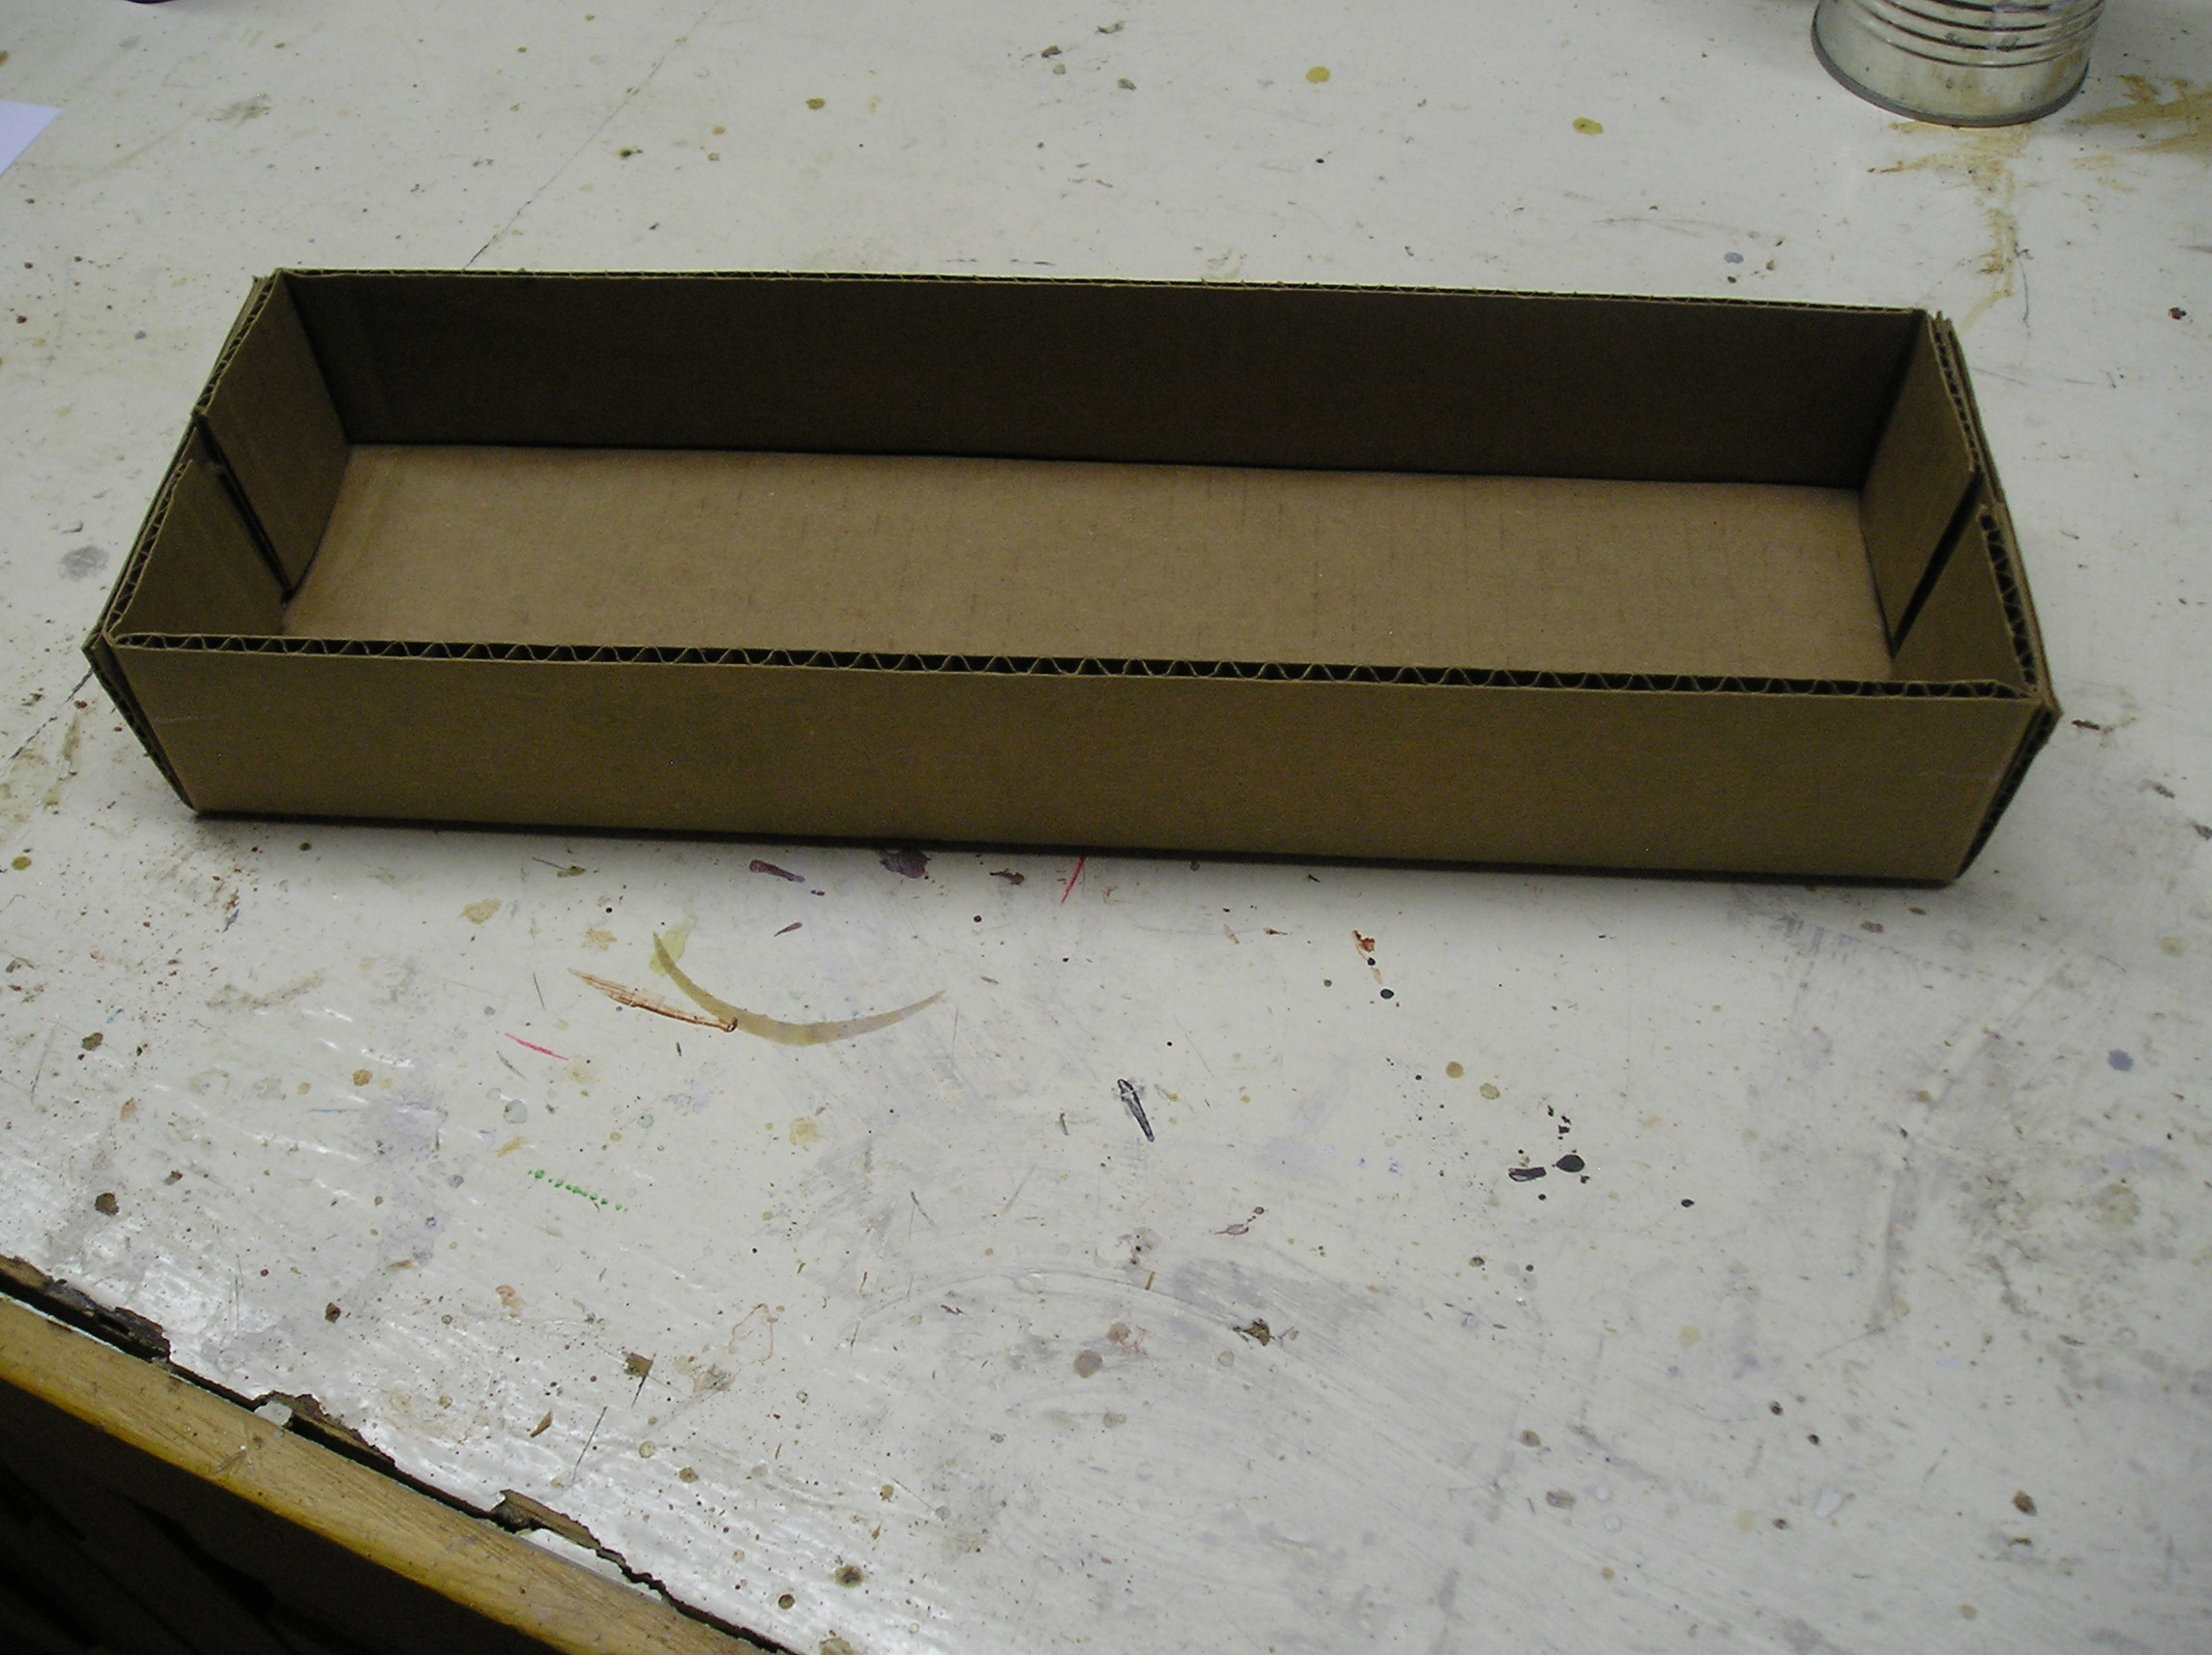 A Faster, Easier Way to Make Boxes